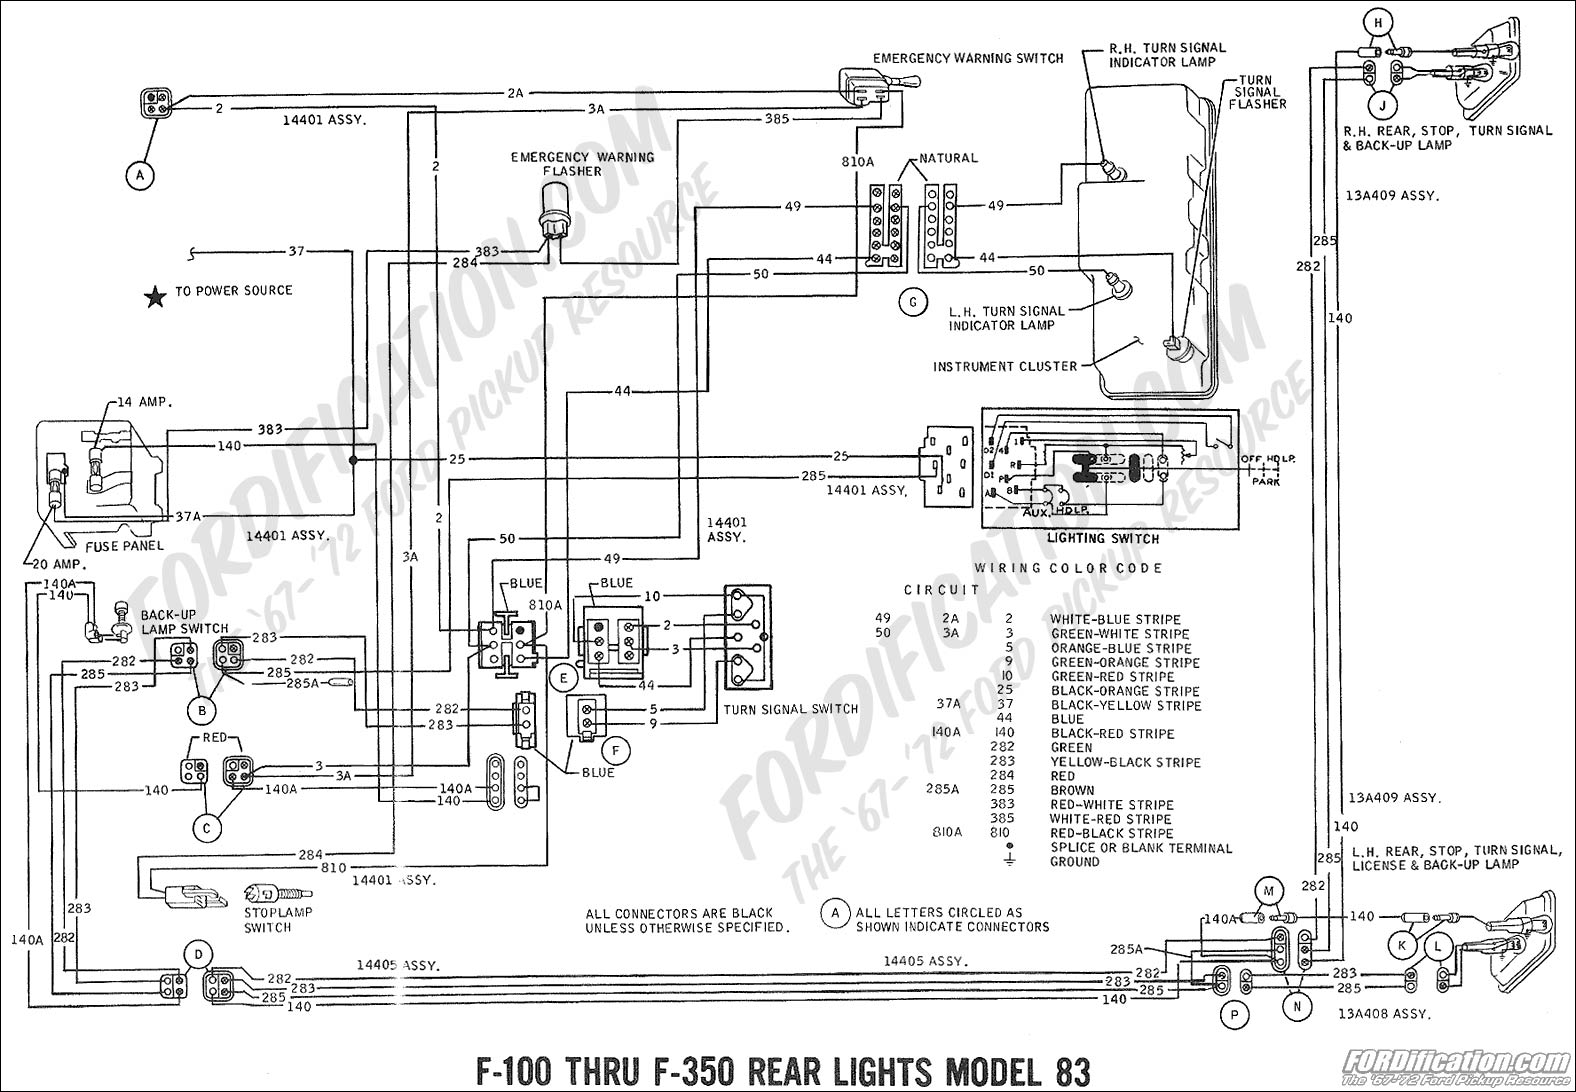 wiring_69rearlights mdl83 2 ford truck technical drawings and schematics section h wiring 1969 Ford Mustang Wiring Diagram at bayanpartner.co